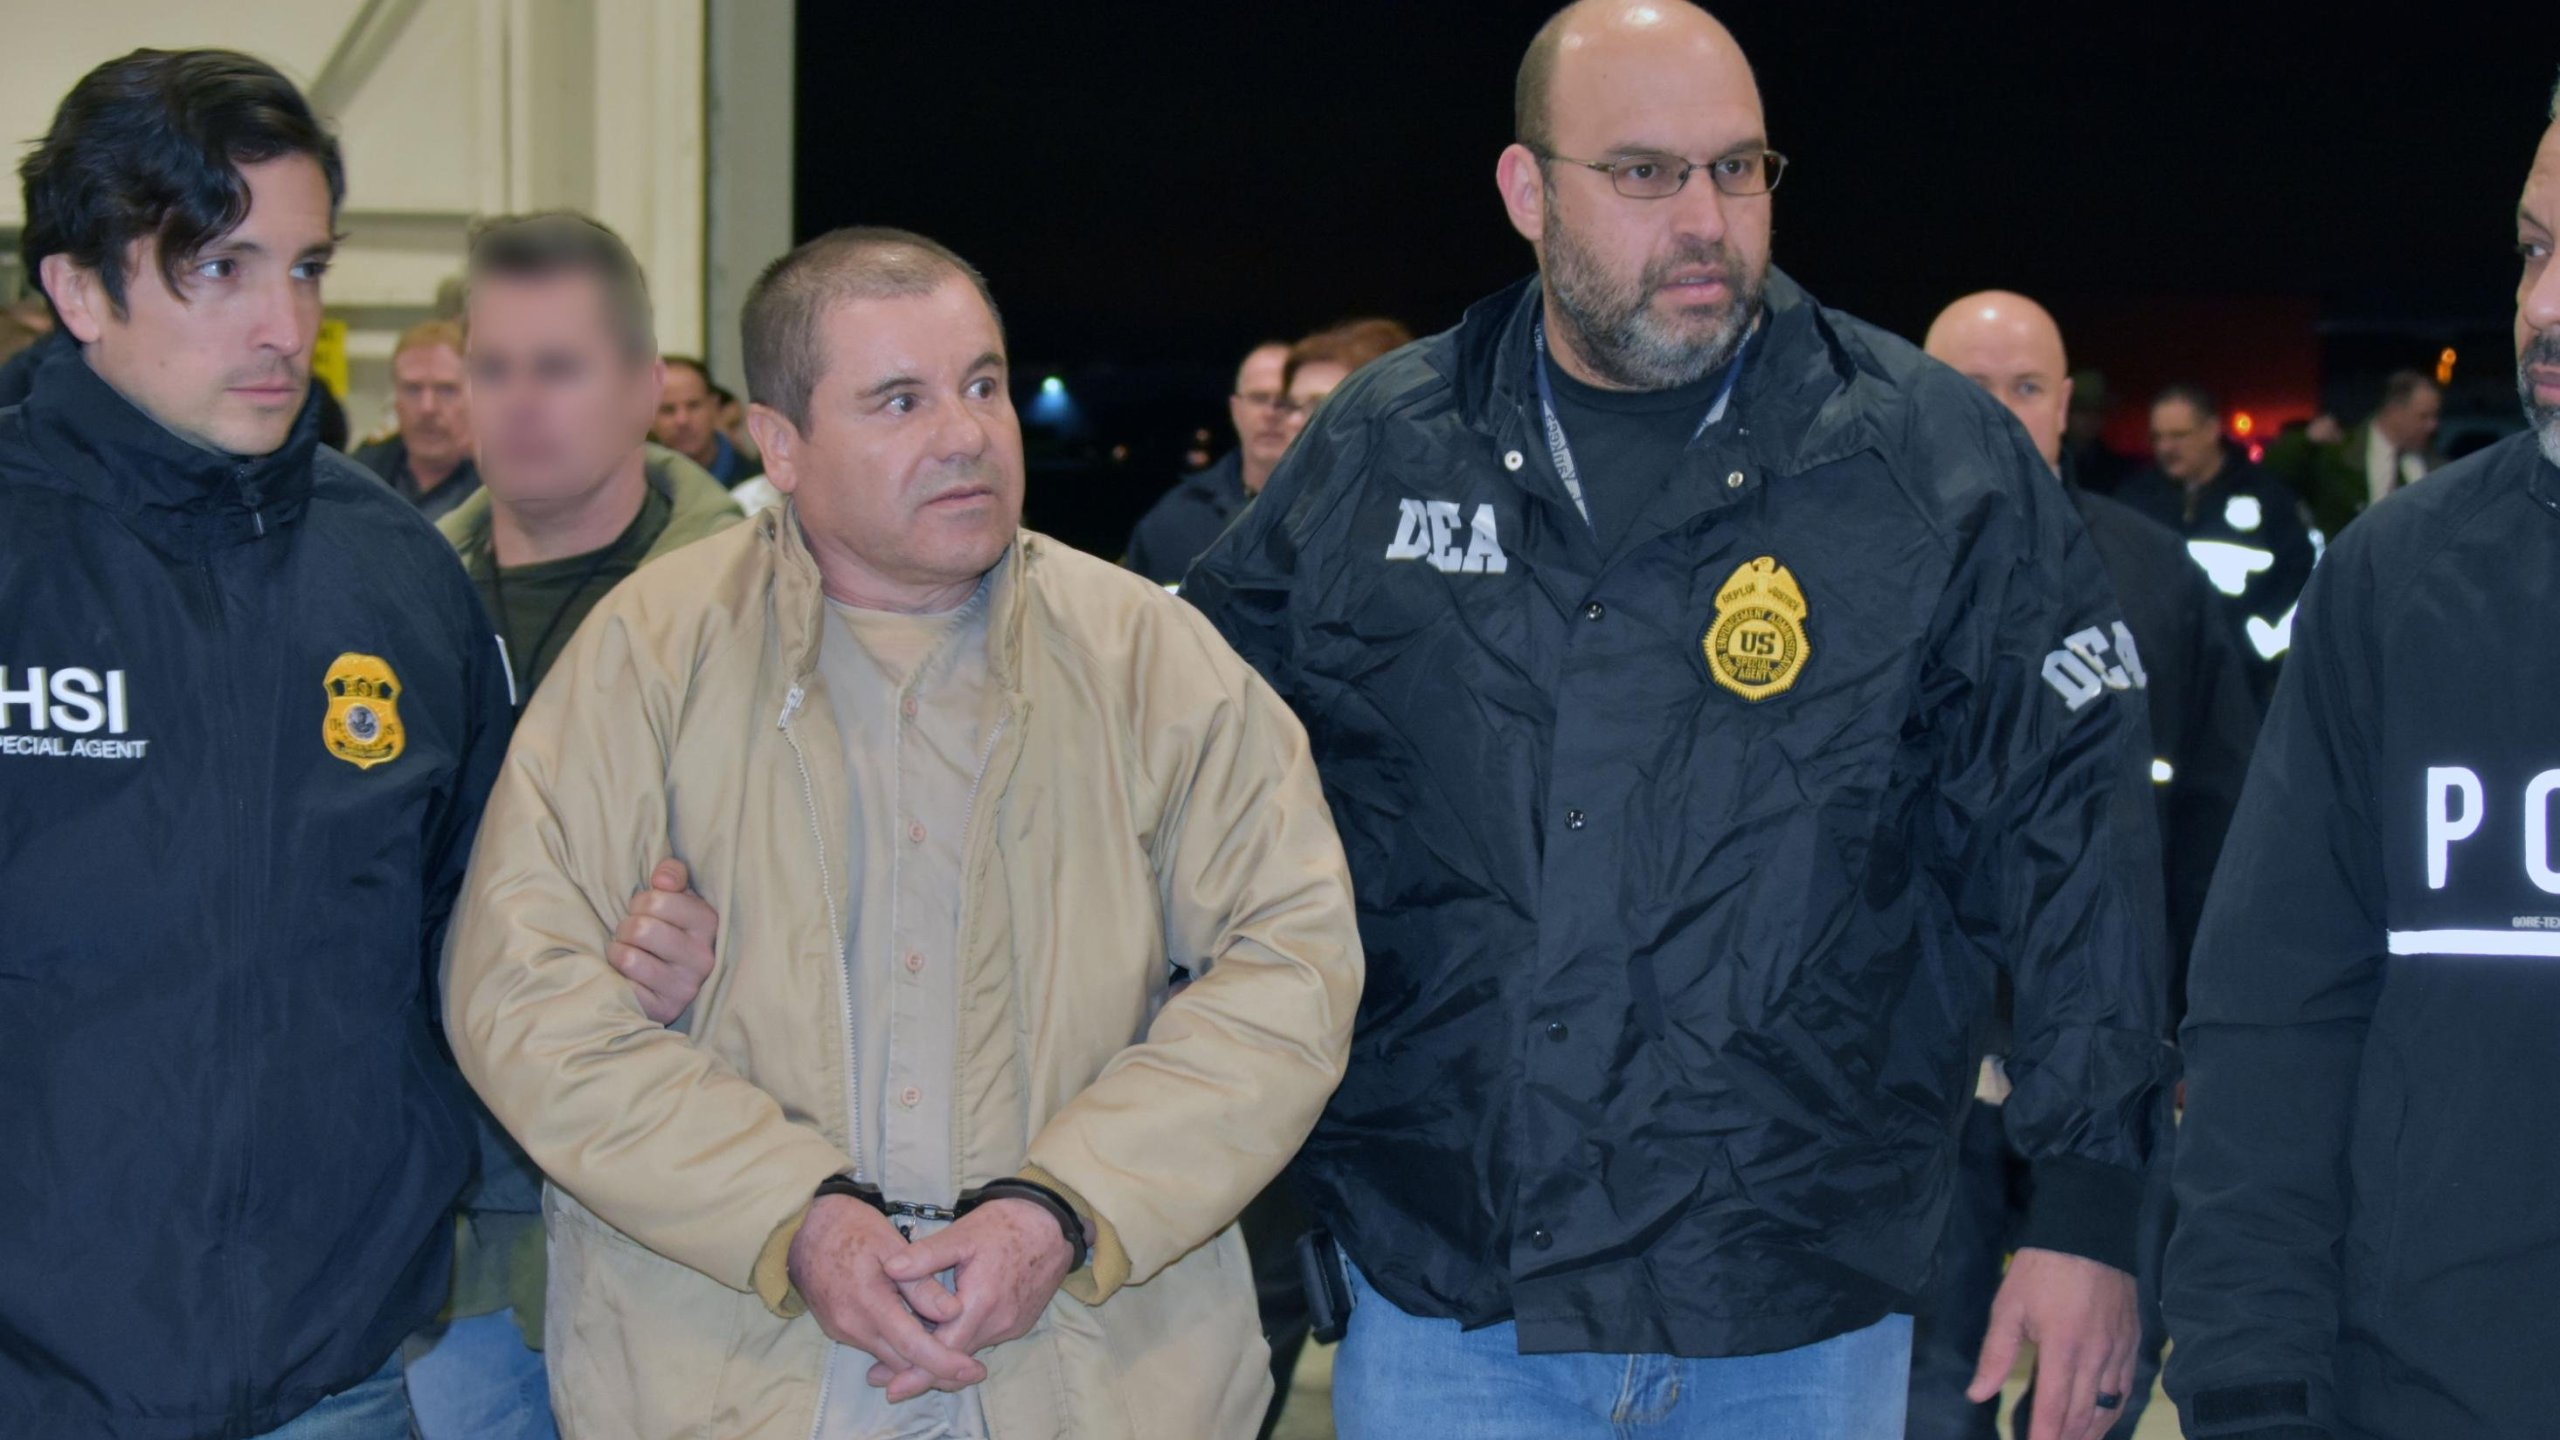 """Convicted drug kingpin Joaquin """"El Chapo"""" Guzman is escorted by federal agents as he's extradited to the U.S. on Feb. 19, 2019, in this handout photo from the Department of Justice."""